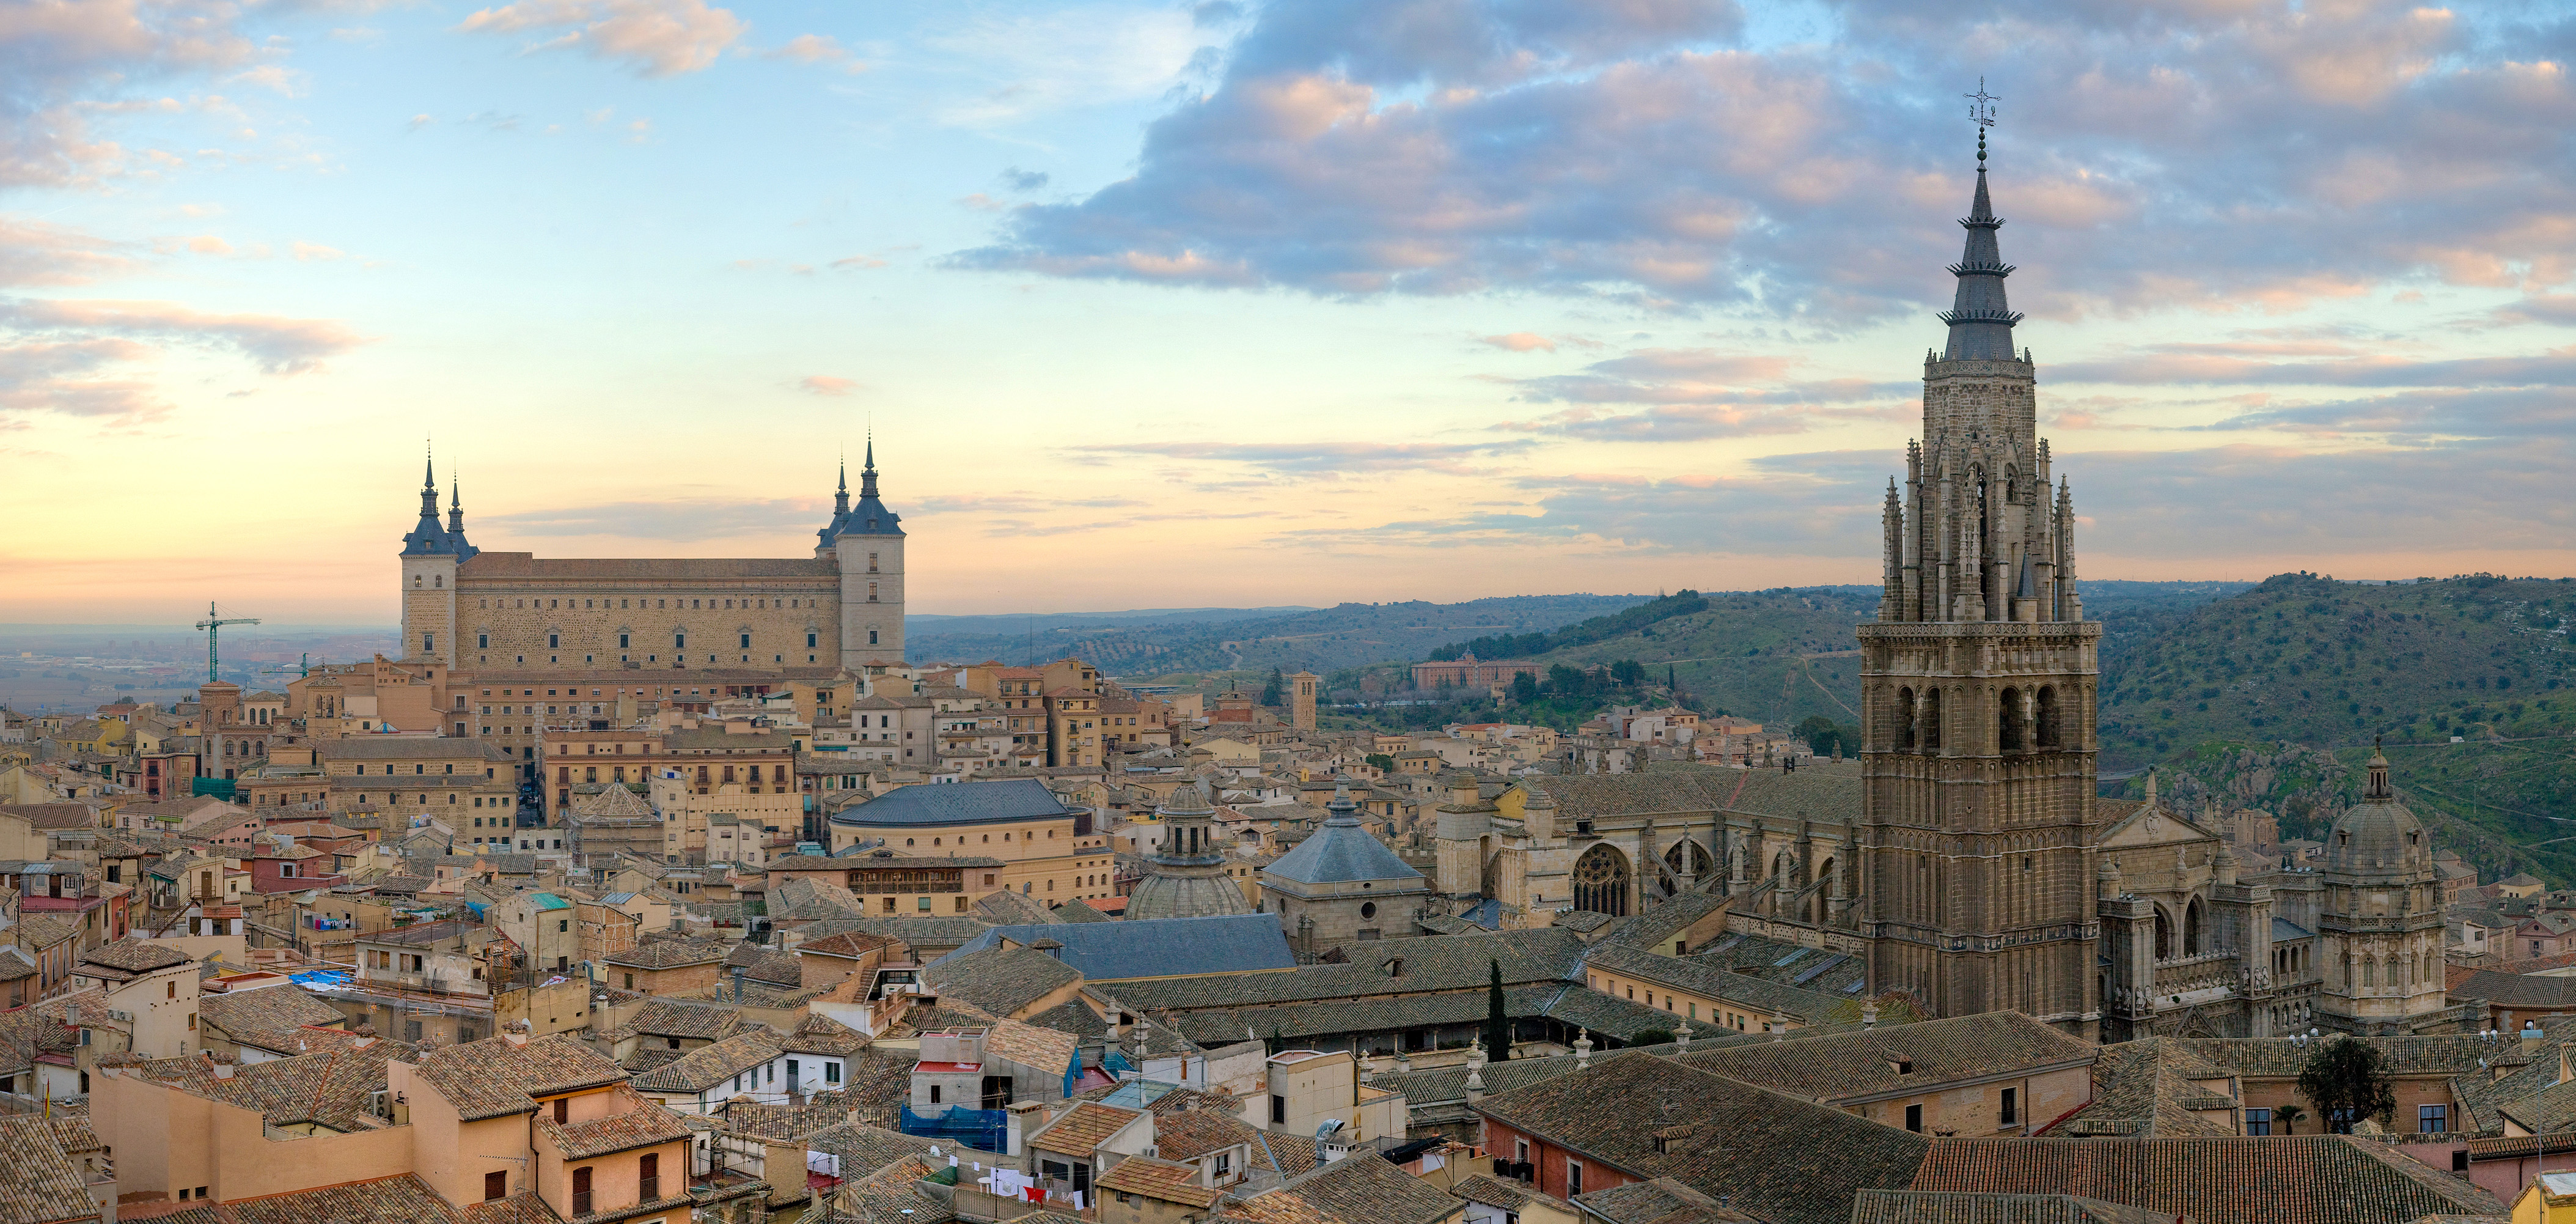 Skyline of the old part of Toledo